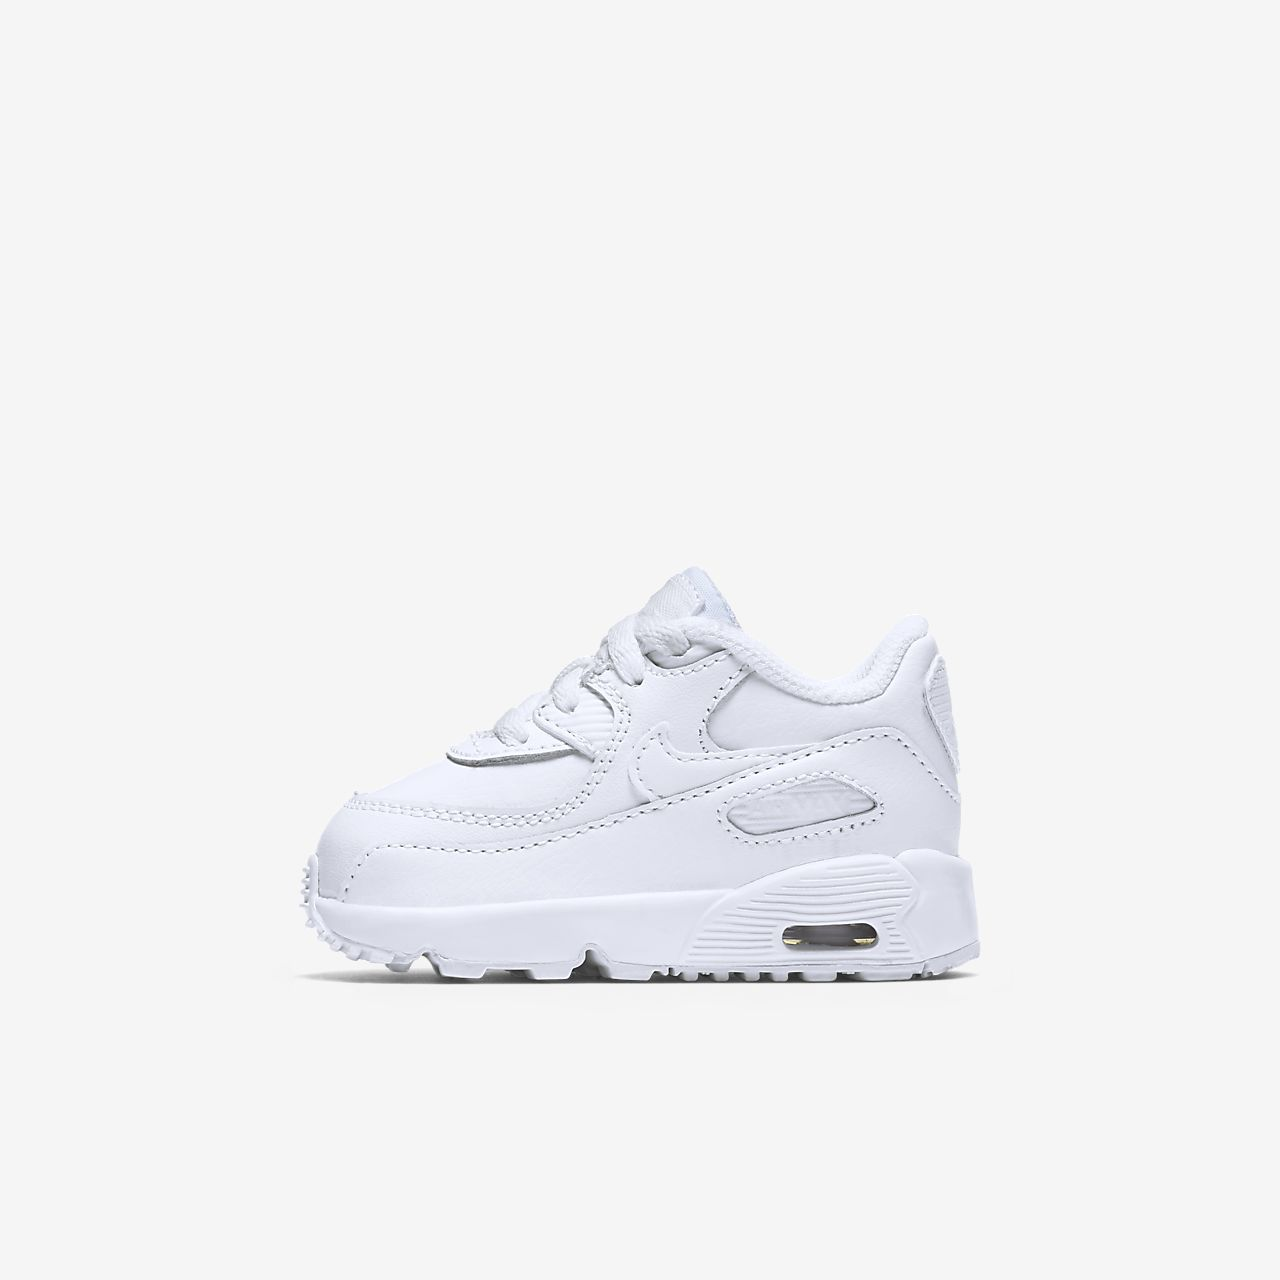 Nike Air Max 90 Leather 嬰幼兒鞋款